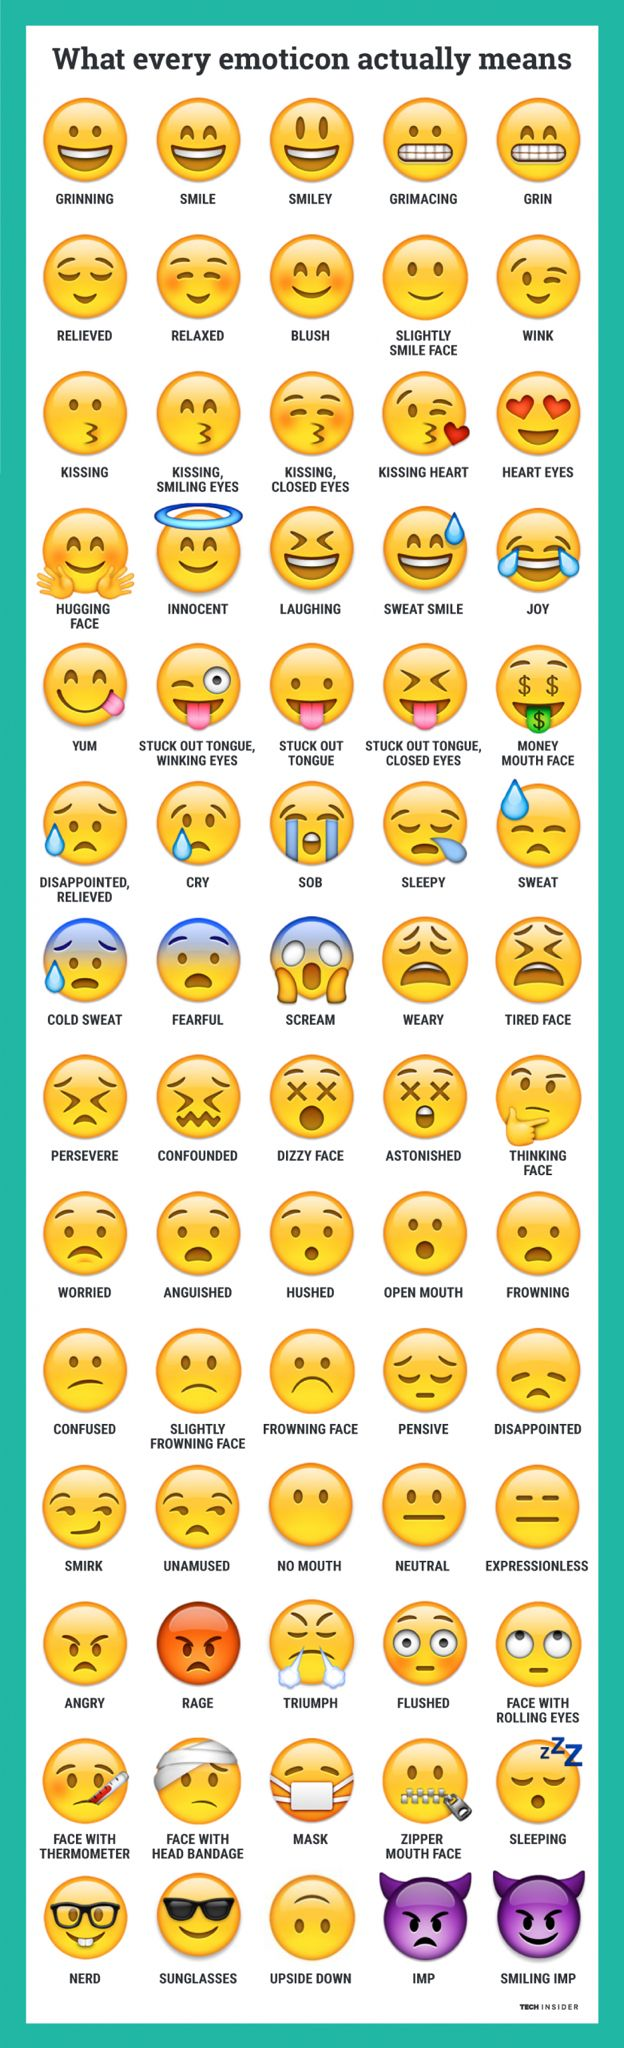 what exactly all the different emojis actually mean. | i wanna learn